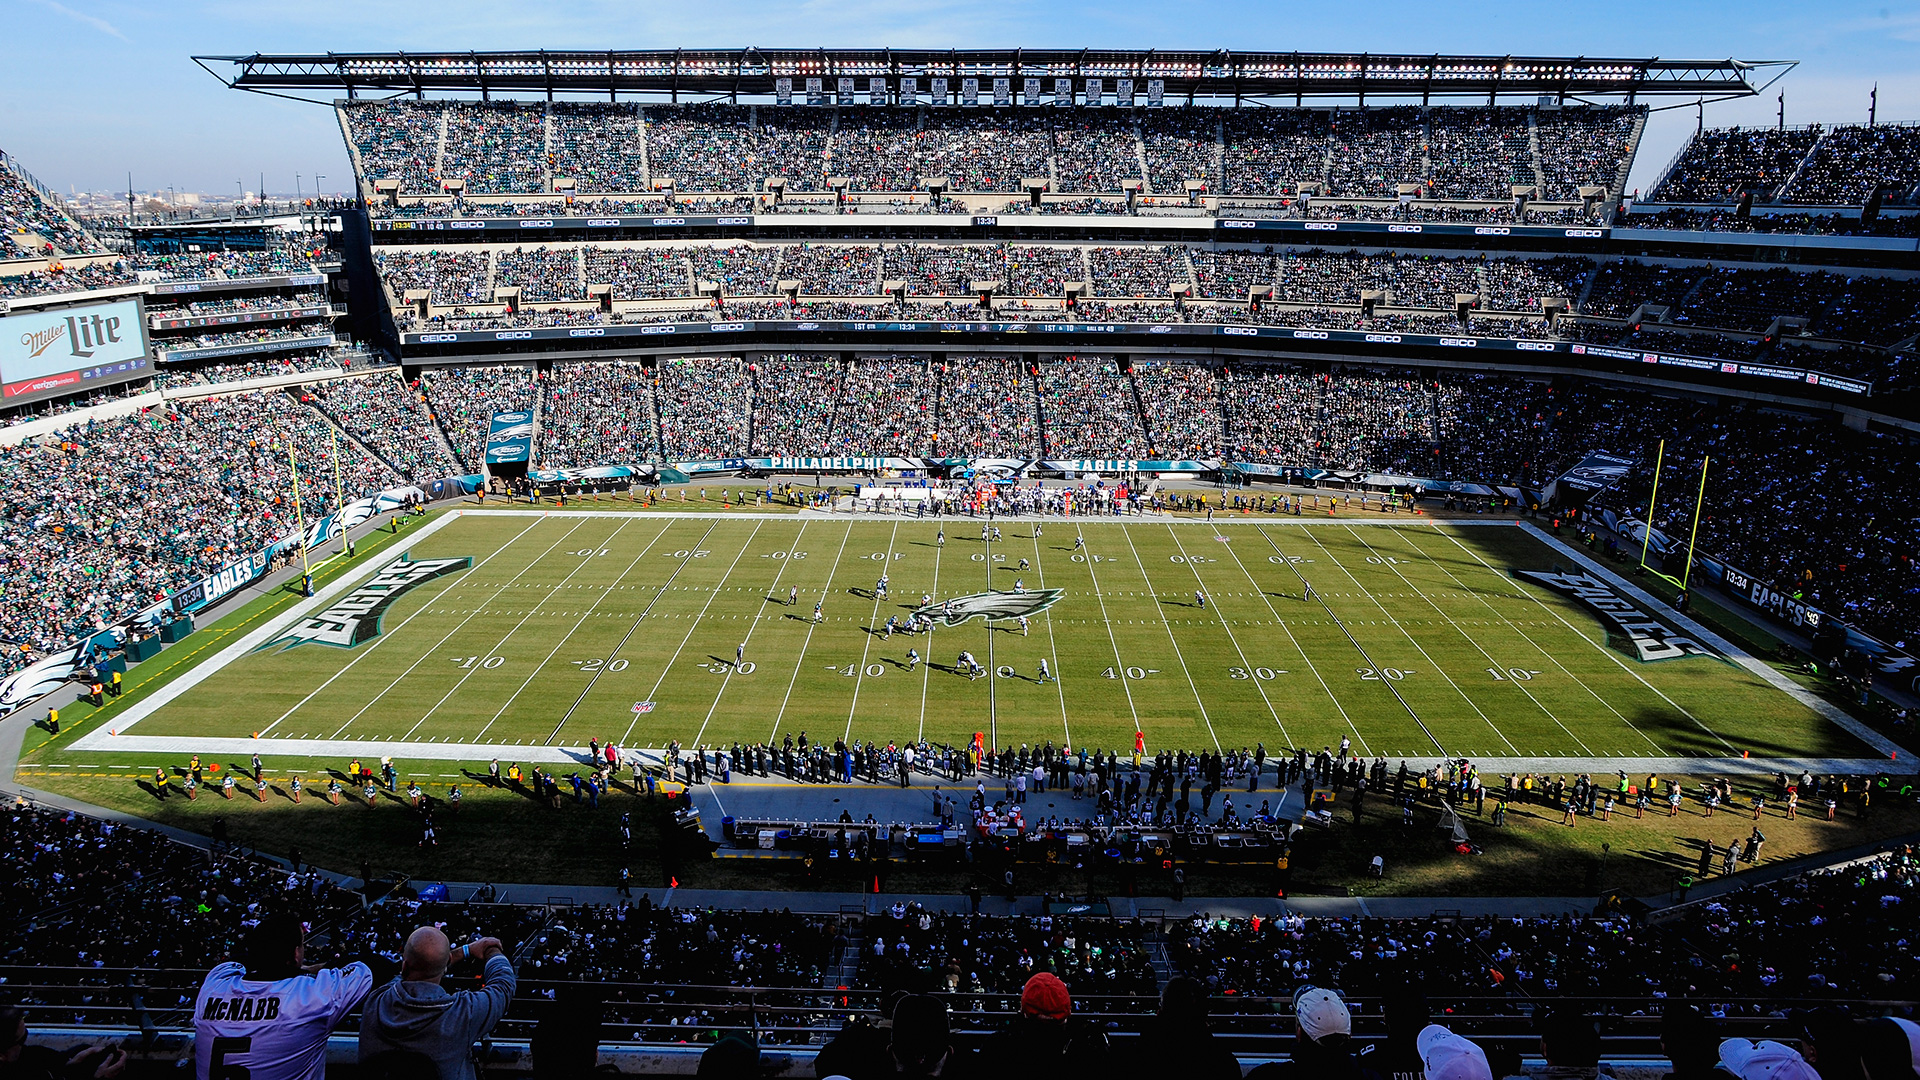 Eagles Reporter Kicked Out Of Press Box During Cowboys Game Sporting News